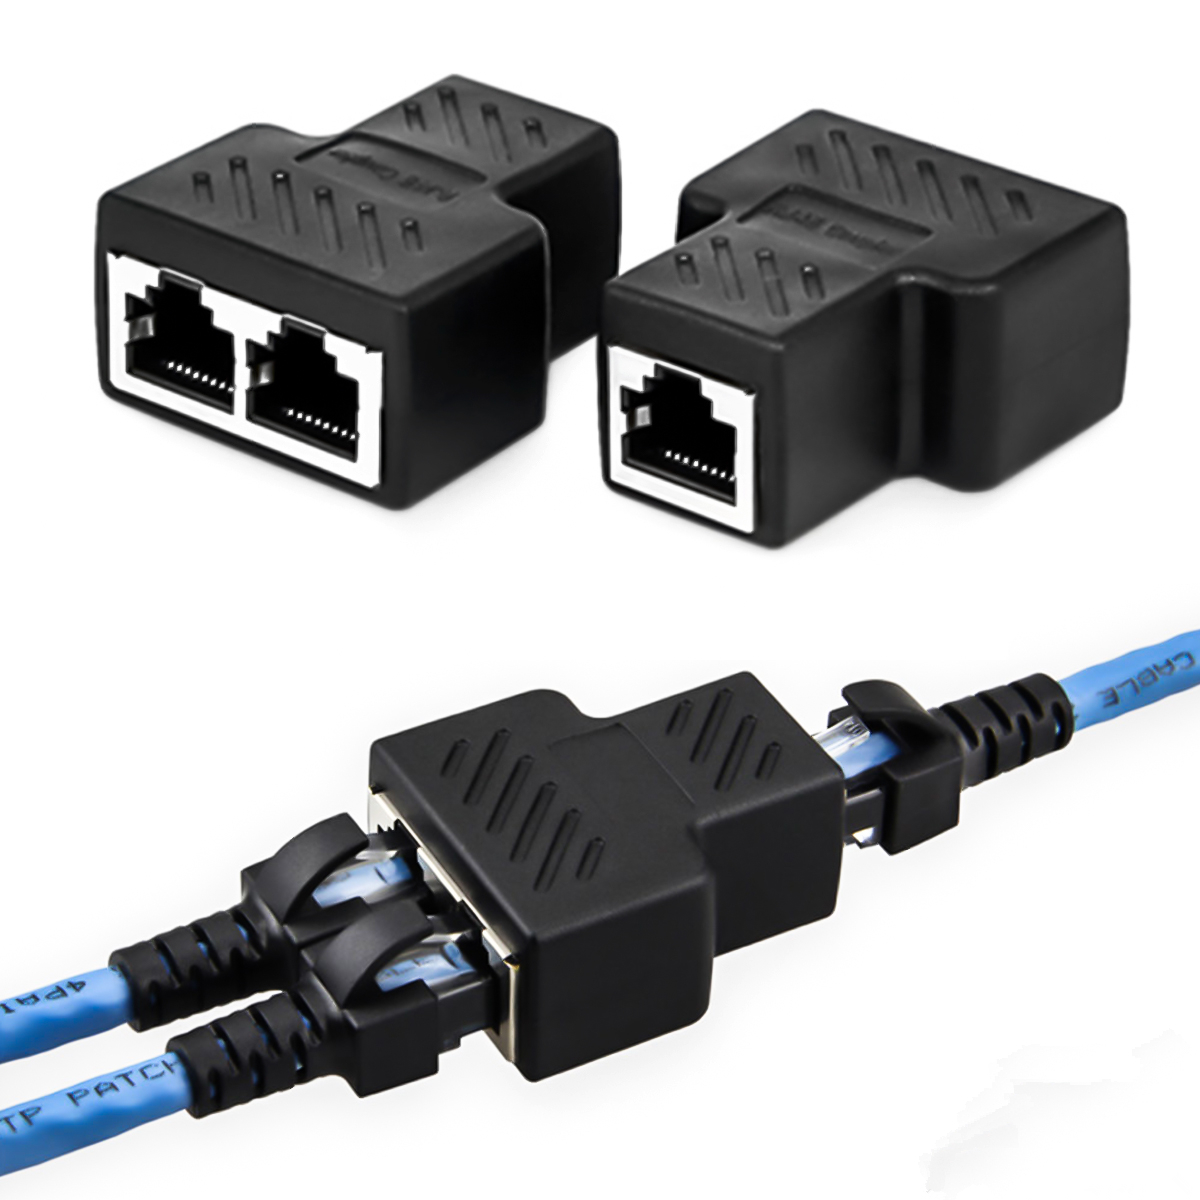 Network 1 to 2 Ways Splitter Connector 1 to 2 LAN RJ45 Network Cable Splitter Extender Plug Adapter Connector